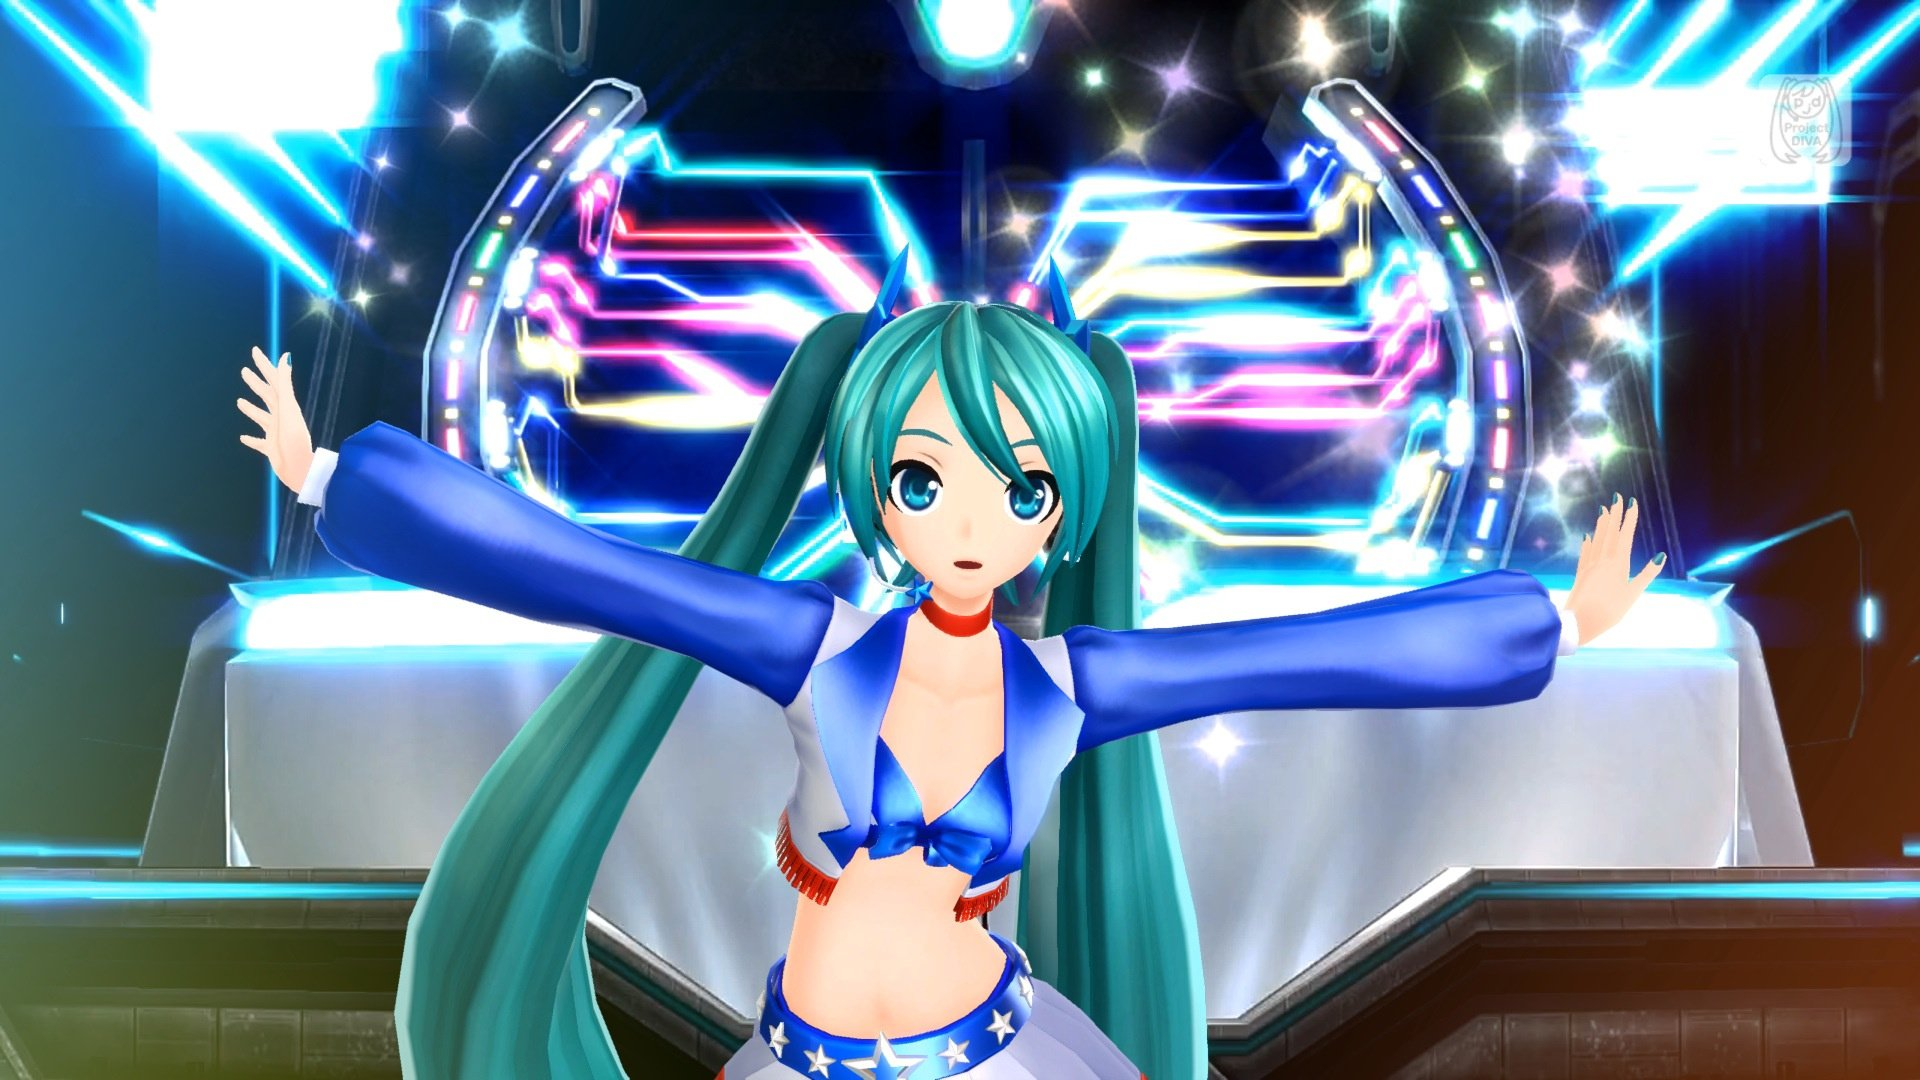 miku project diva Full list of hatsune miku: project diva x trophies and guides to unlock them the game has 31 trophies (10 bronze, 15 silver, 5 gold and 1 platinum) and takes around 80-100 hours to complete.